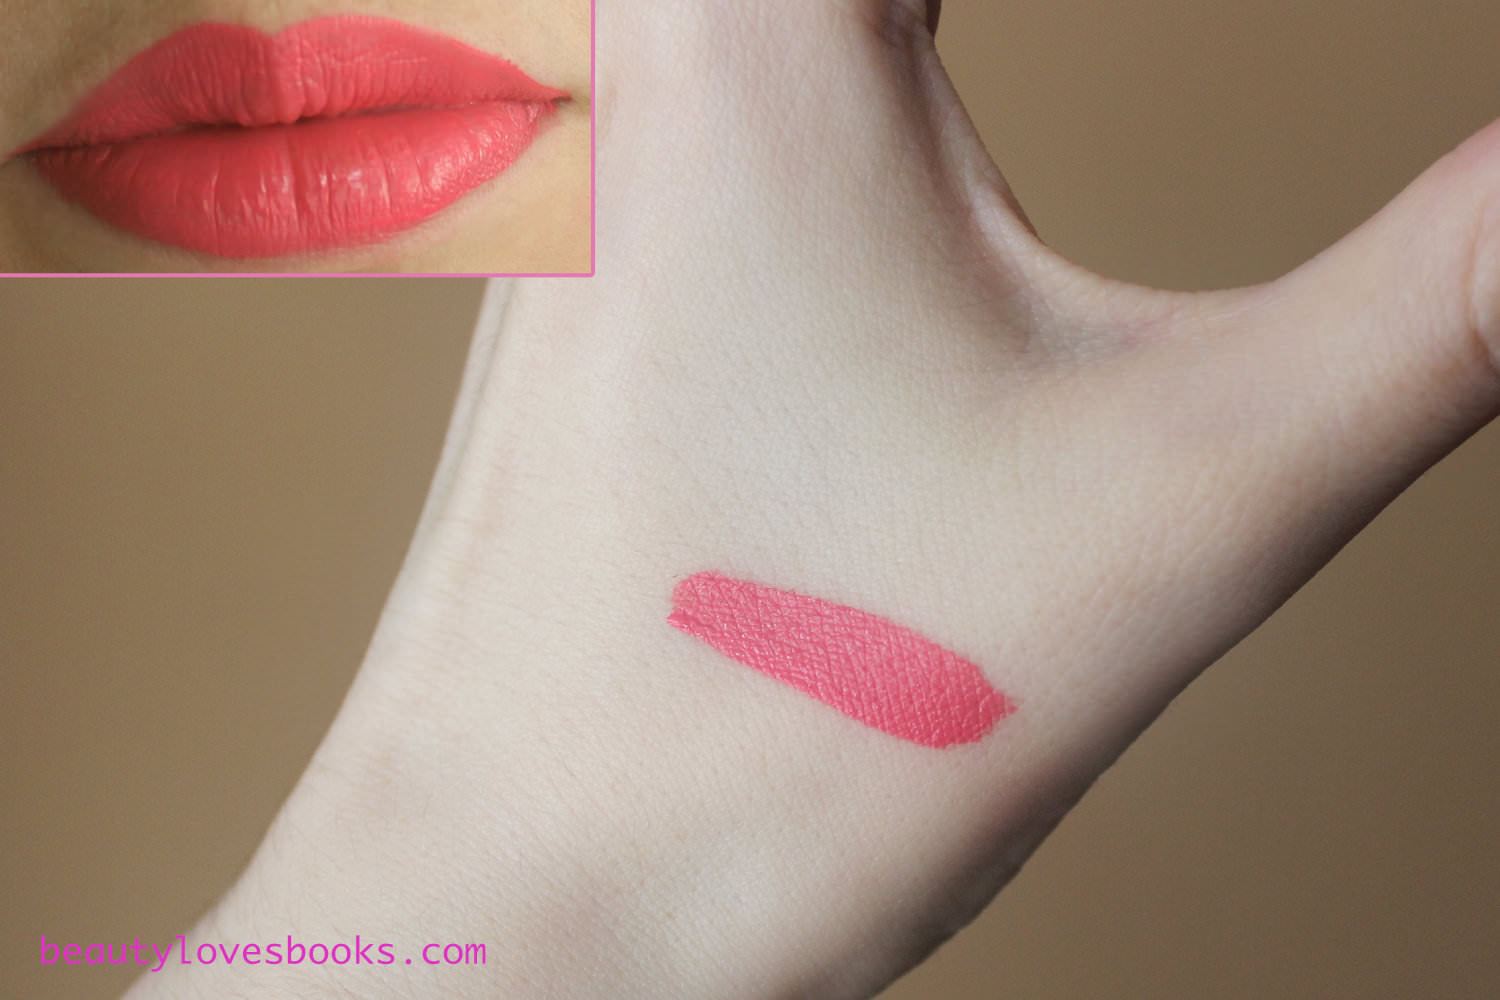 Estée Lauder Pure Color Envy Lip Potion in 200 Wicked sweet, swatches